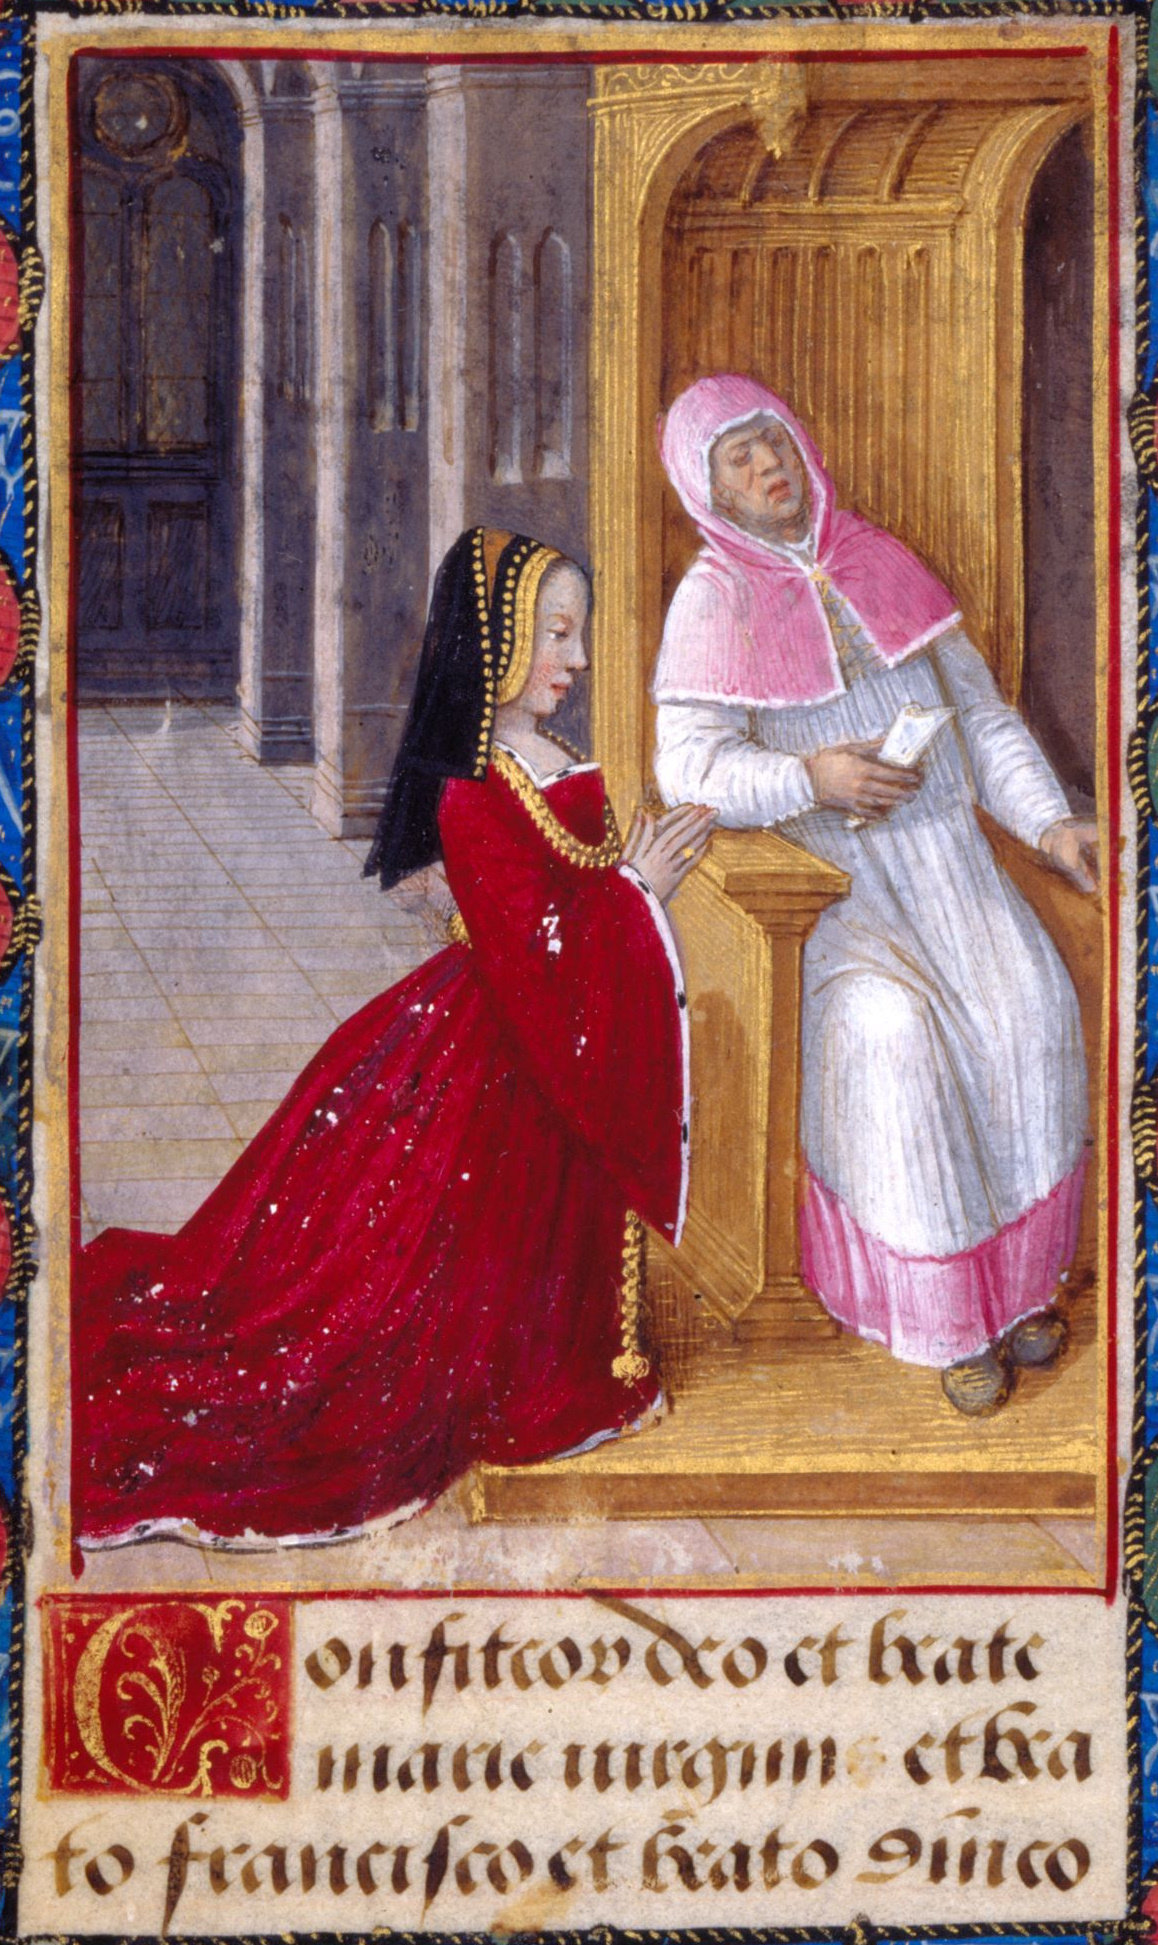 1495 (approx) - Anne de Bretagne at Confession - Prayer Book of Anne de Bretagne - Illuminated by Jean Poyer